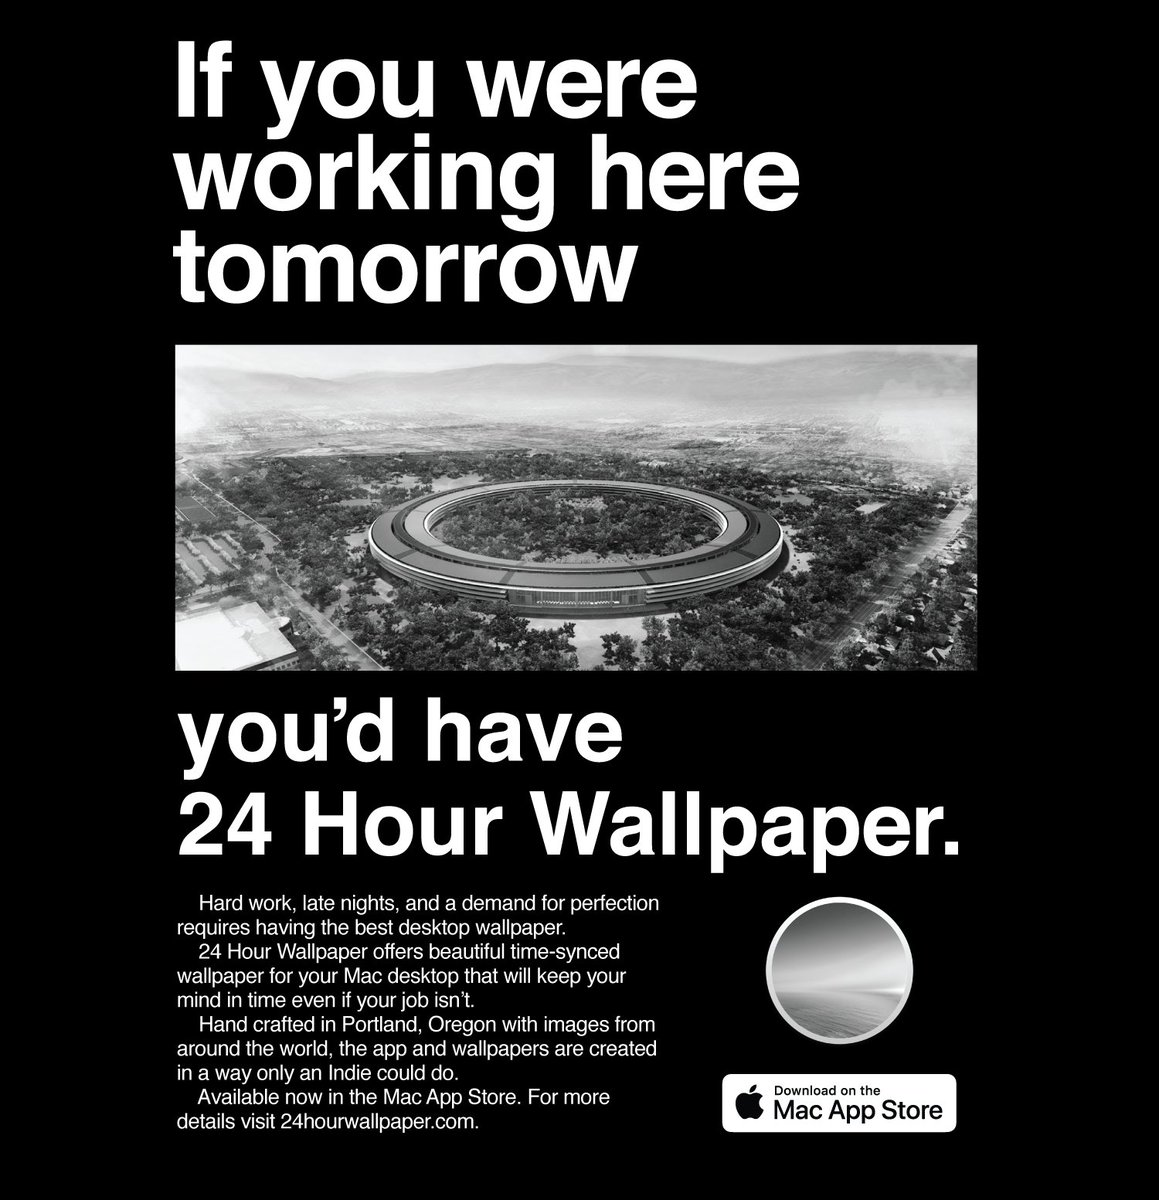 If you like the idea of your desktop matching the time of day, check out 24 Hour Wallpaper, available now in the Mac App Store. http://24hourwallpaper.com . ...